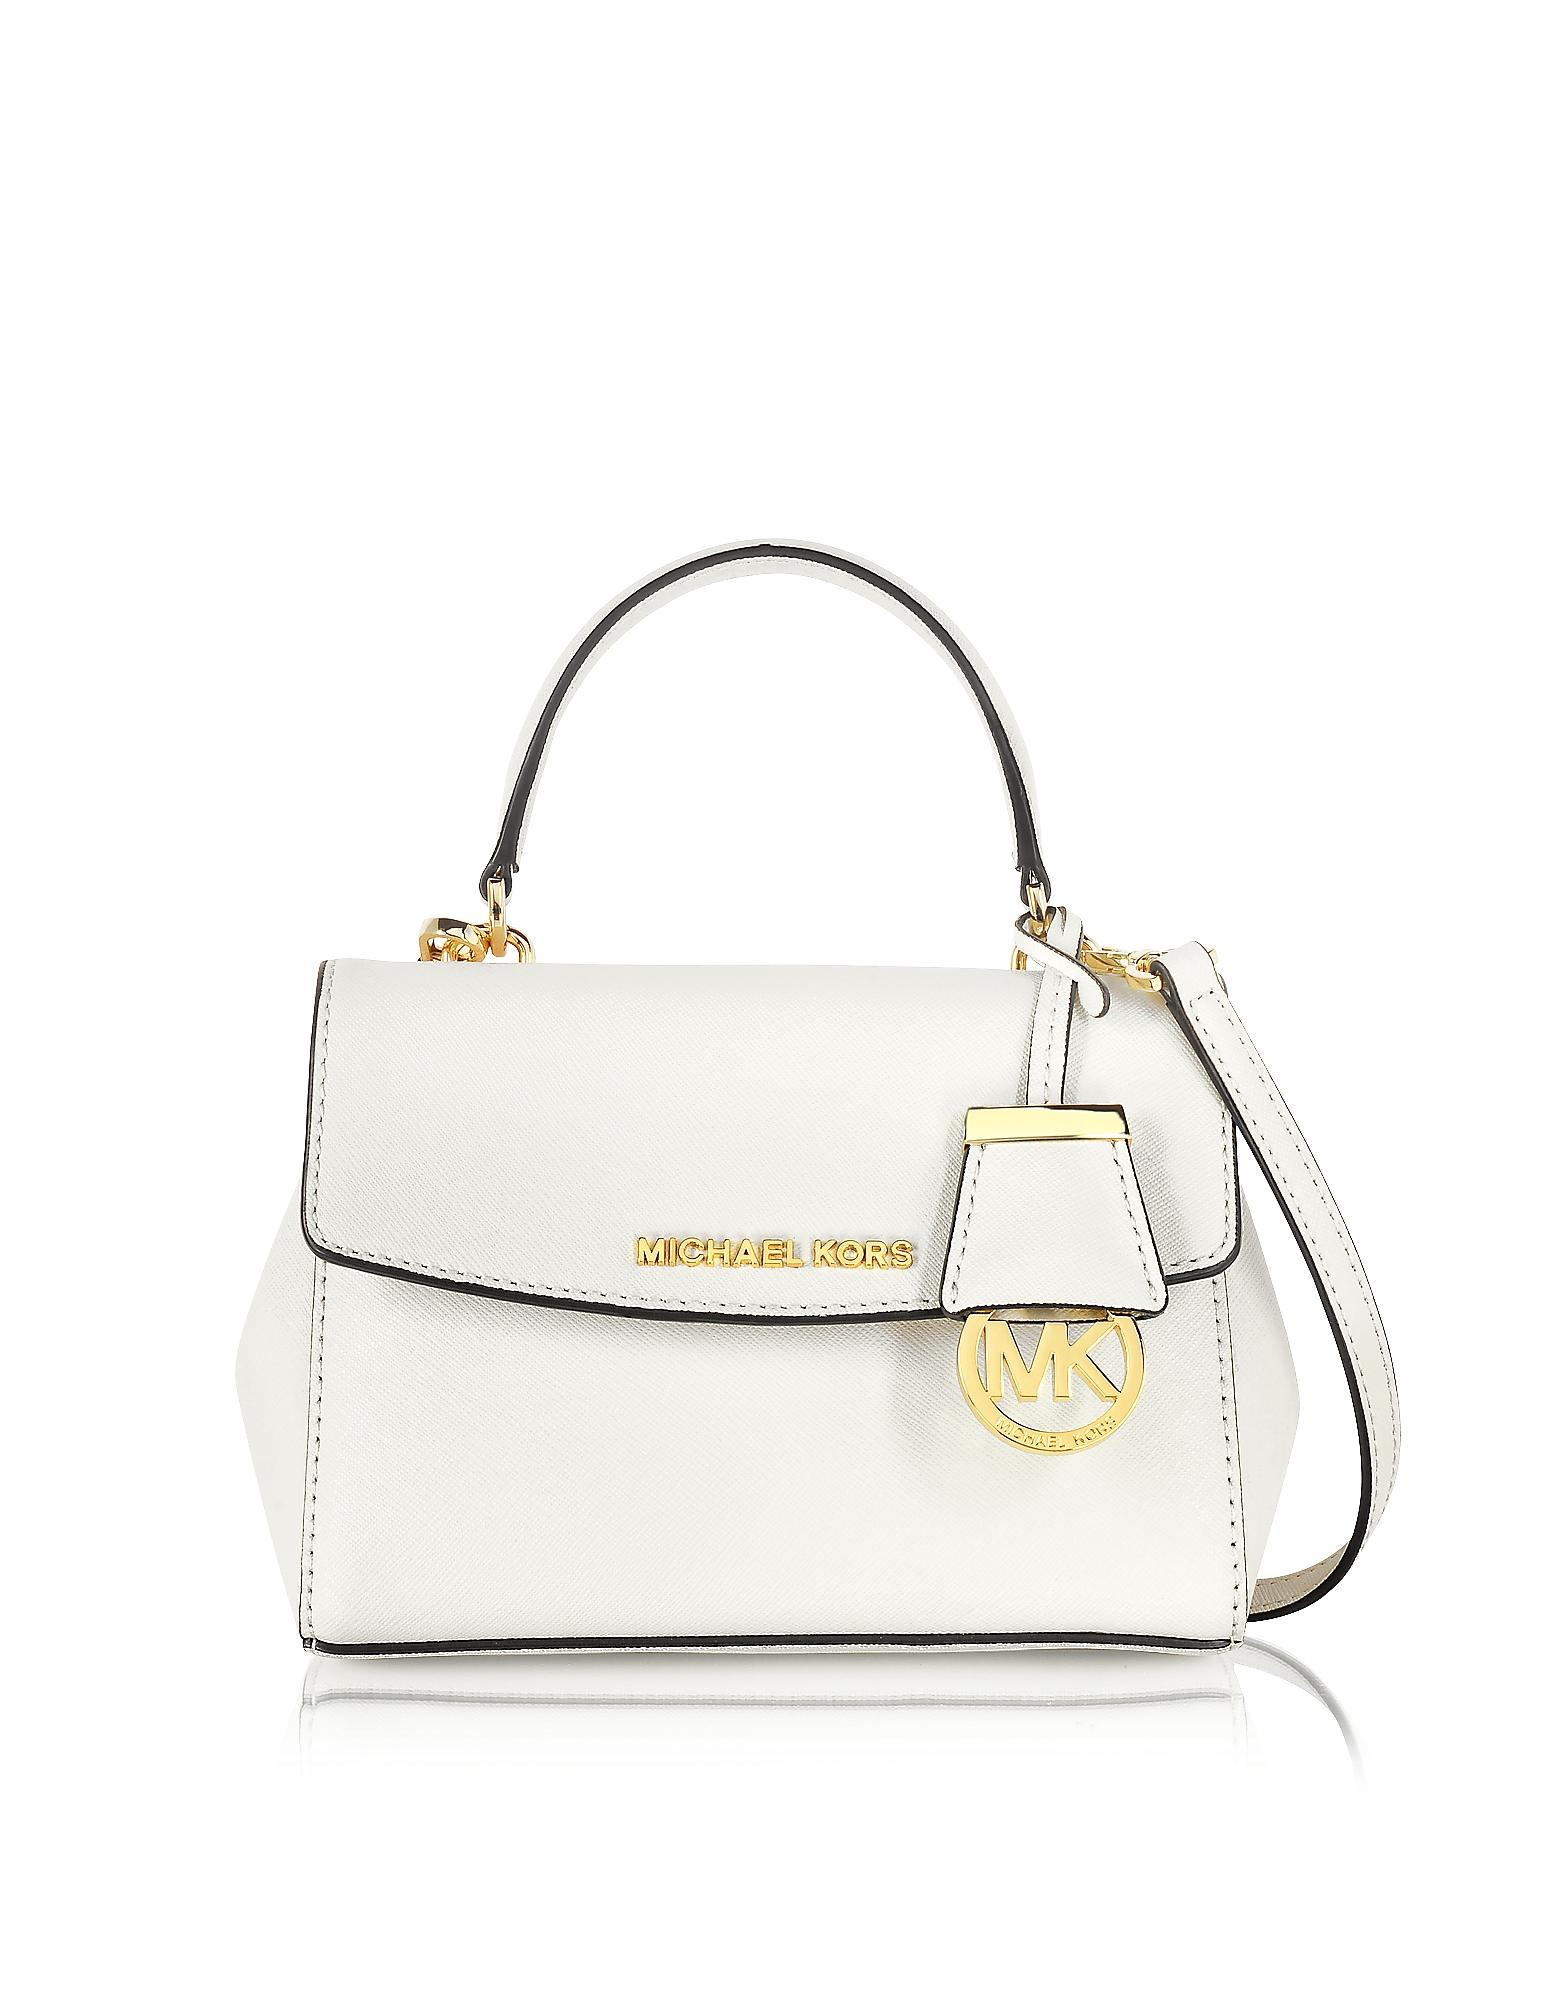 468304767dda Michael kors Ava Extra Small Saffiano Leather Crossbody Bag in White | Lyst